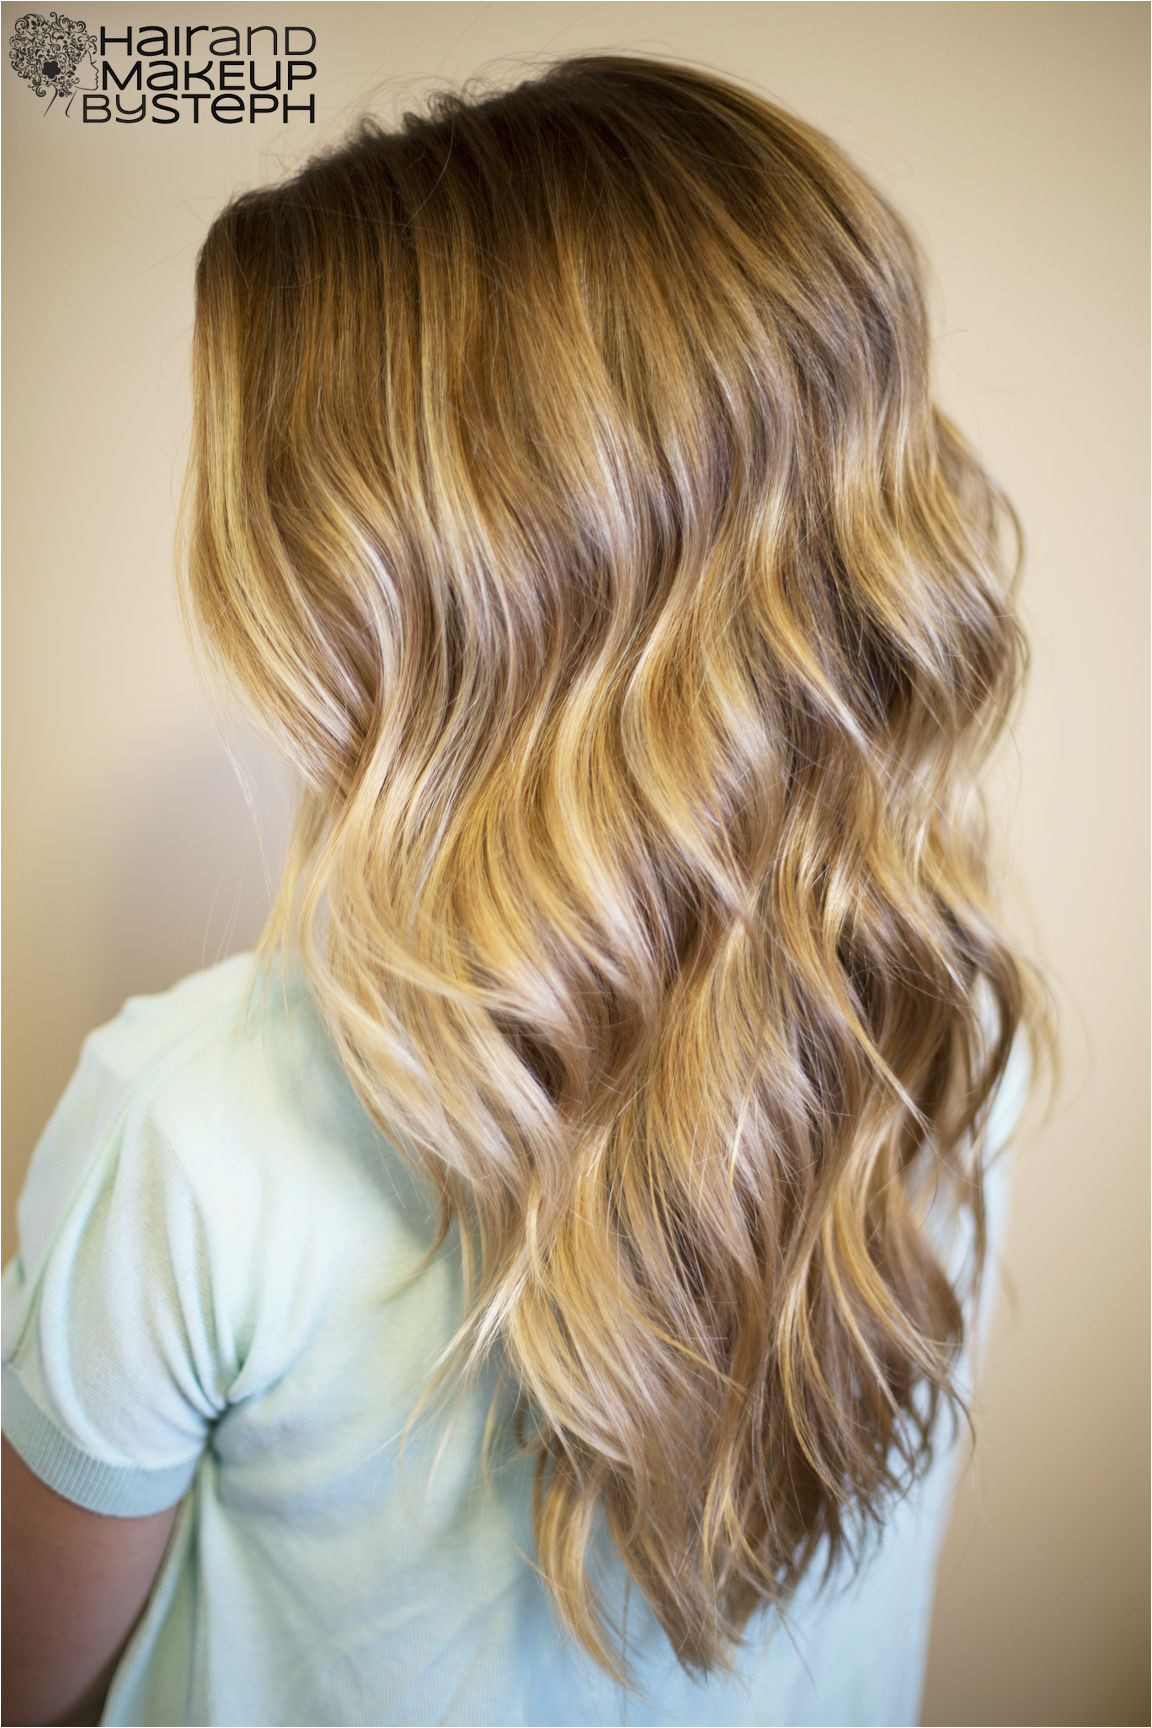 Gorgeous curls waves Tutorial Using a curling wand to simple beachy waves Everyone always asks sheryl at the front desk how she does it well